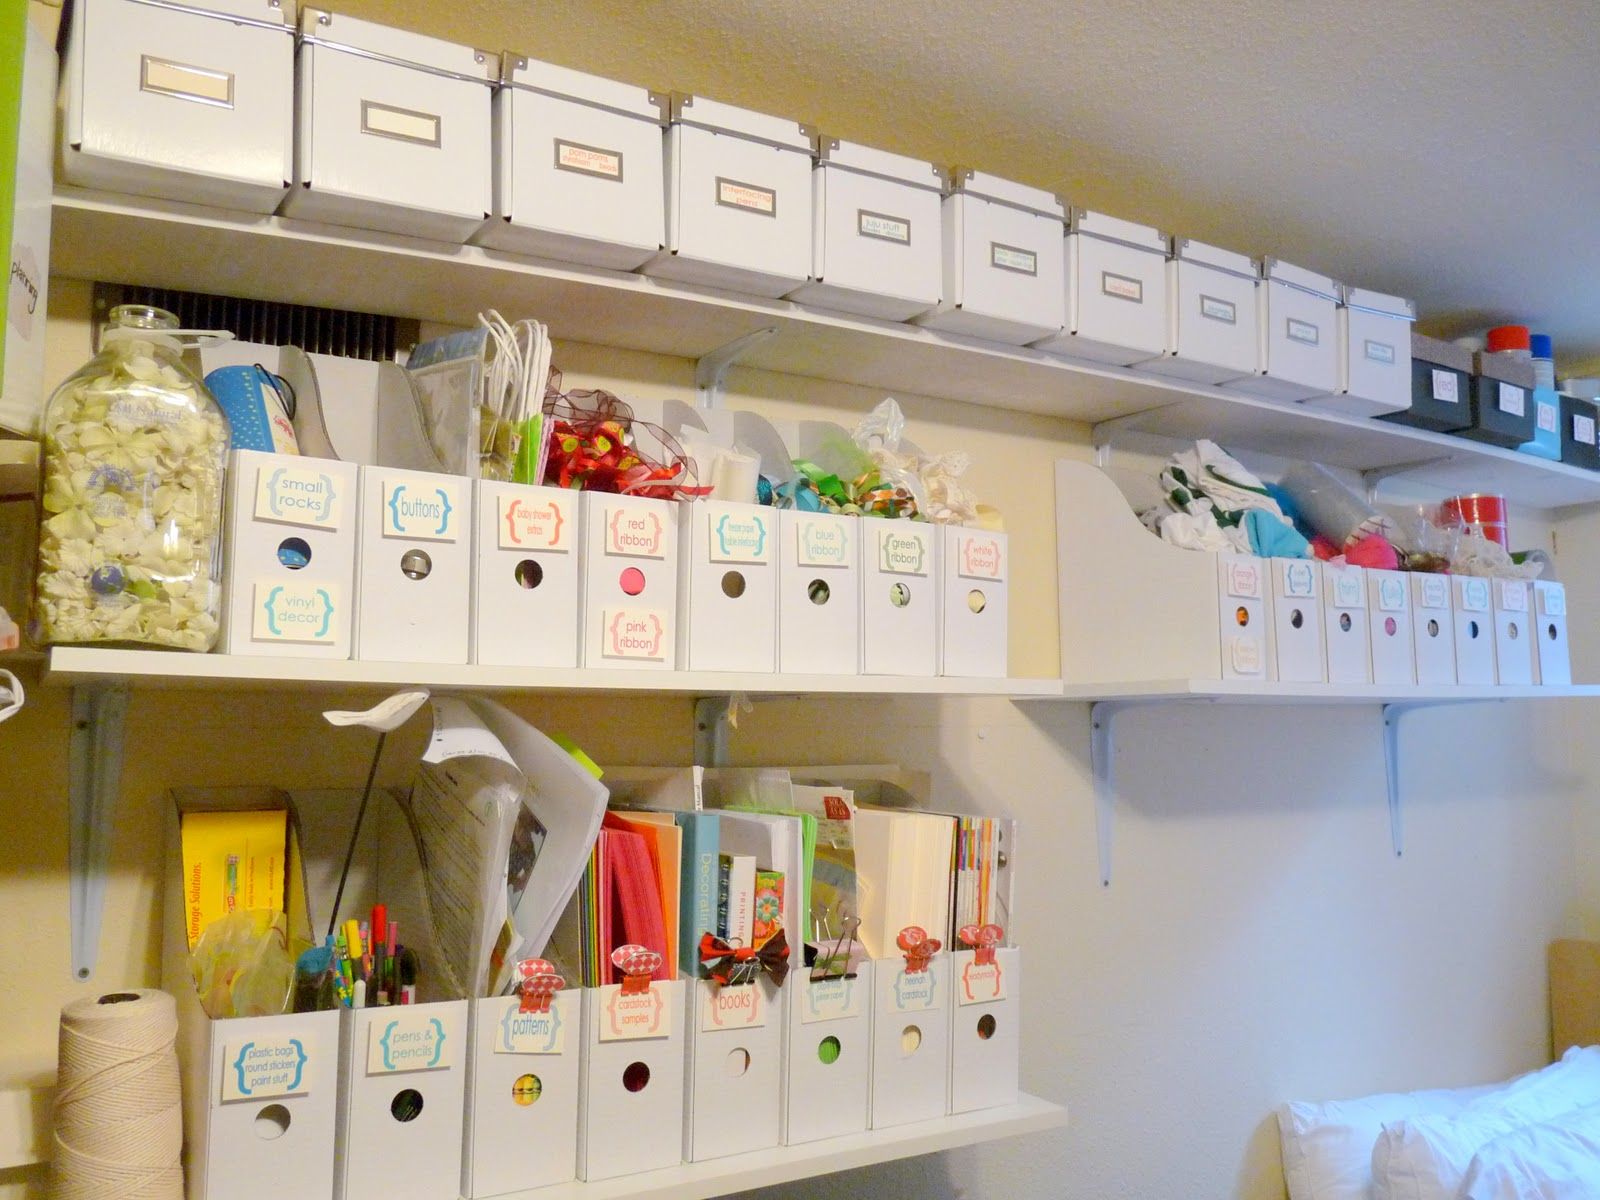 Craft Room Organisation: I Heart New Year's Challenge Day 1- My White, Organized